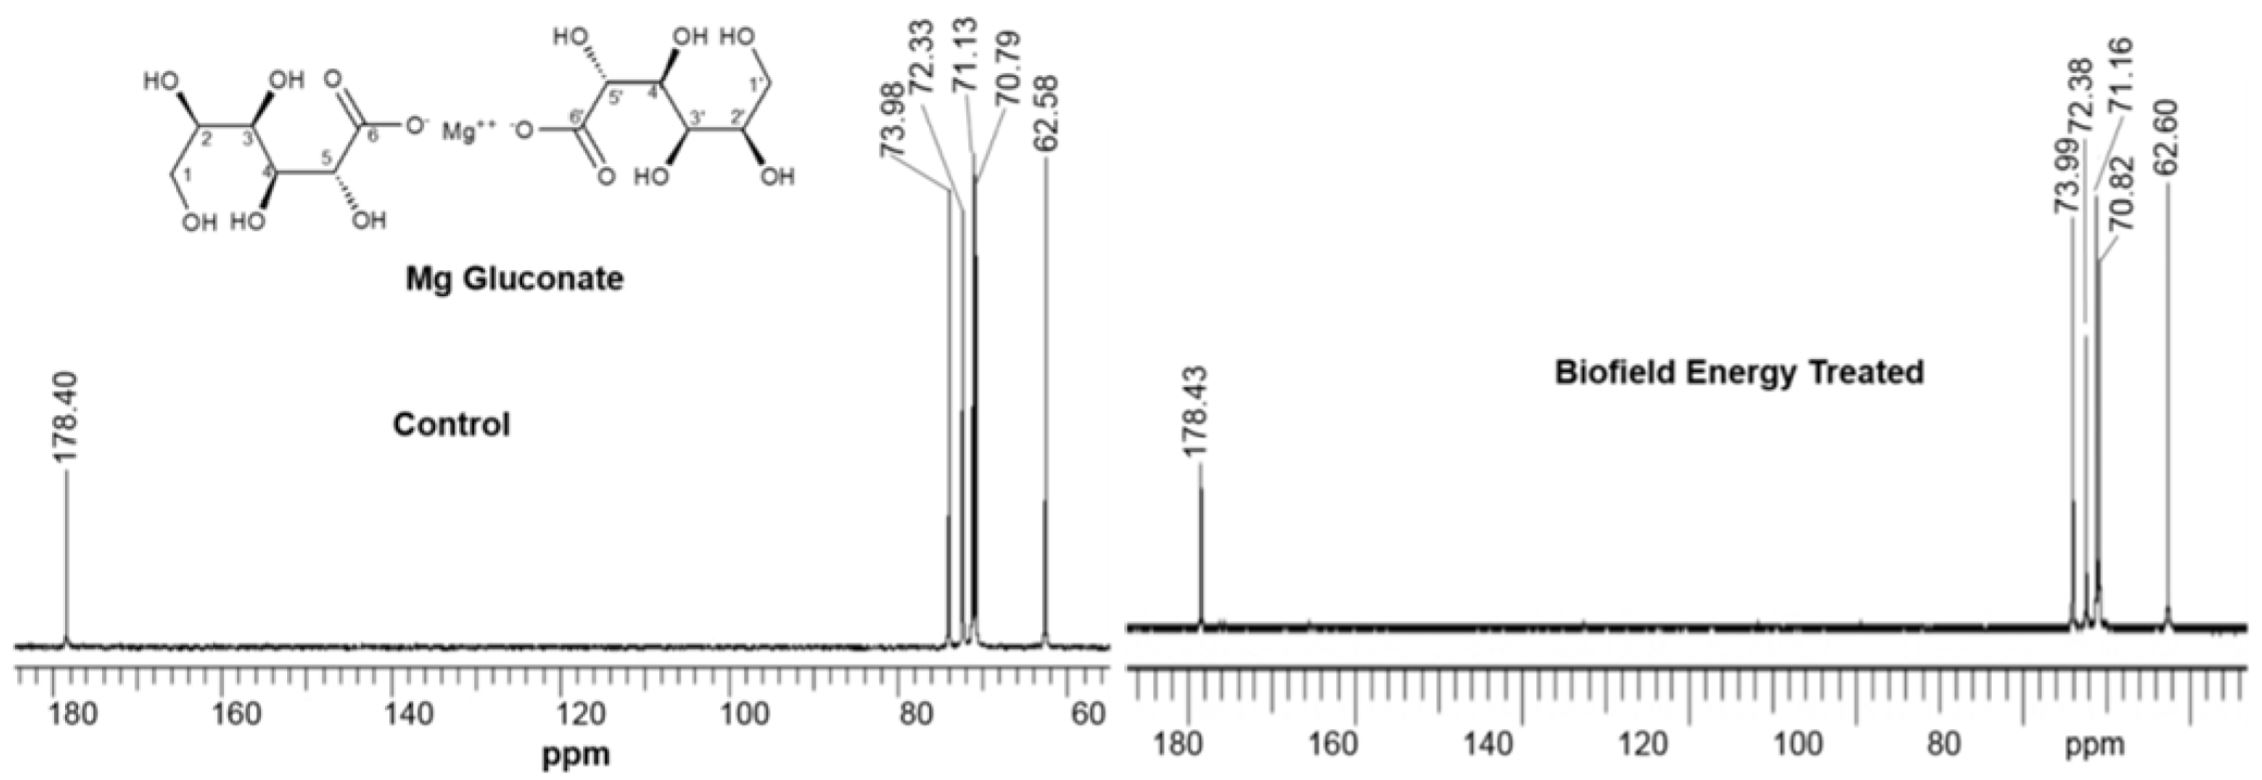 Structural and Natural Isotopic Abundance Analysis of Magnesium